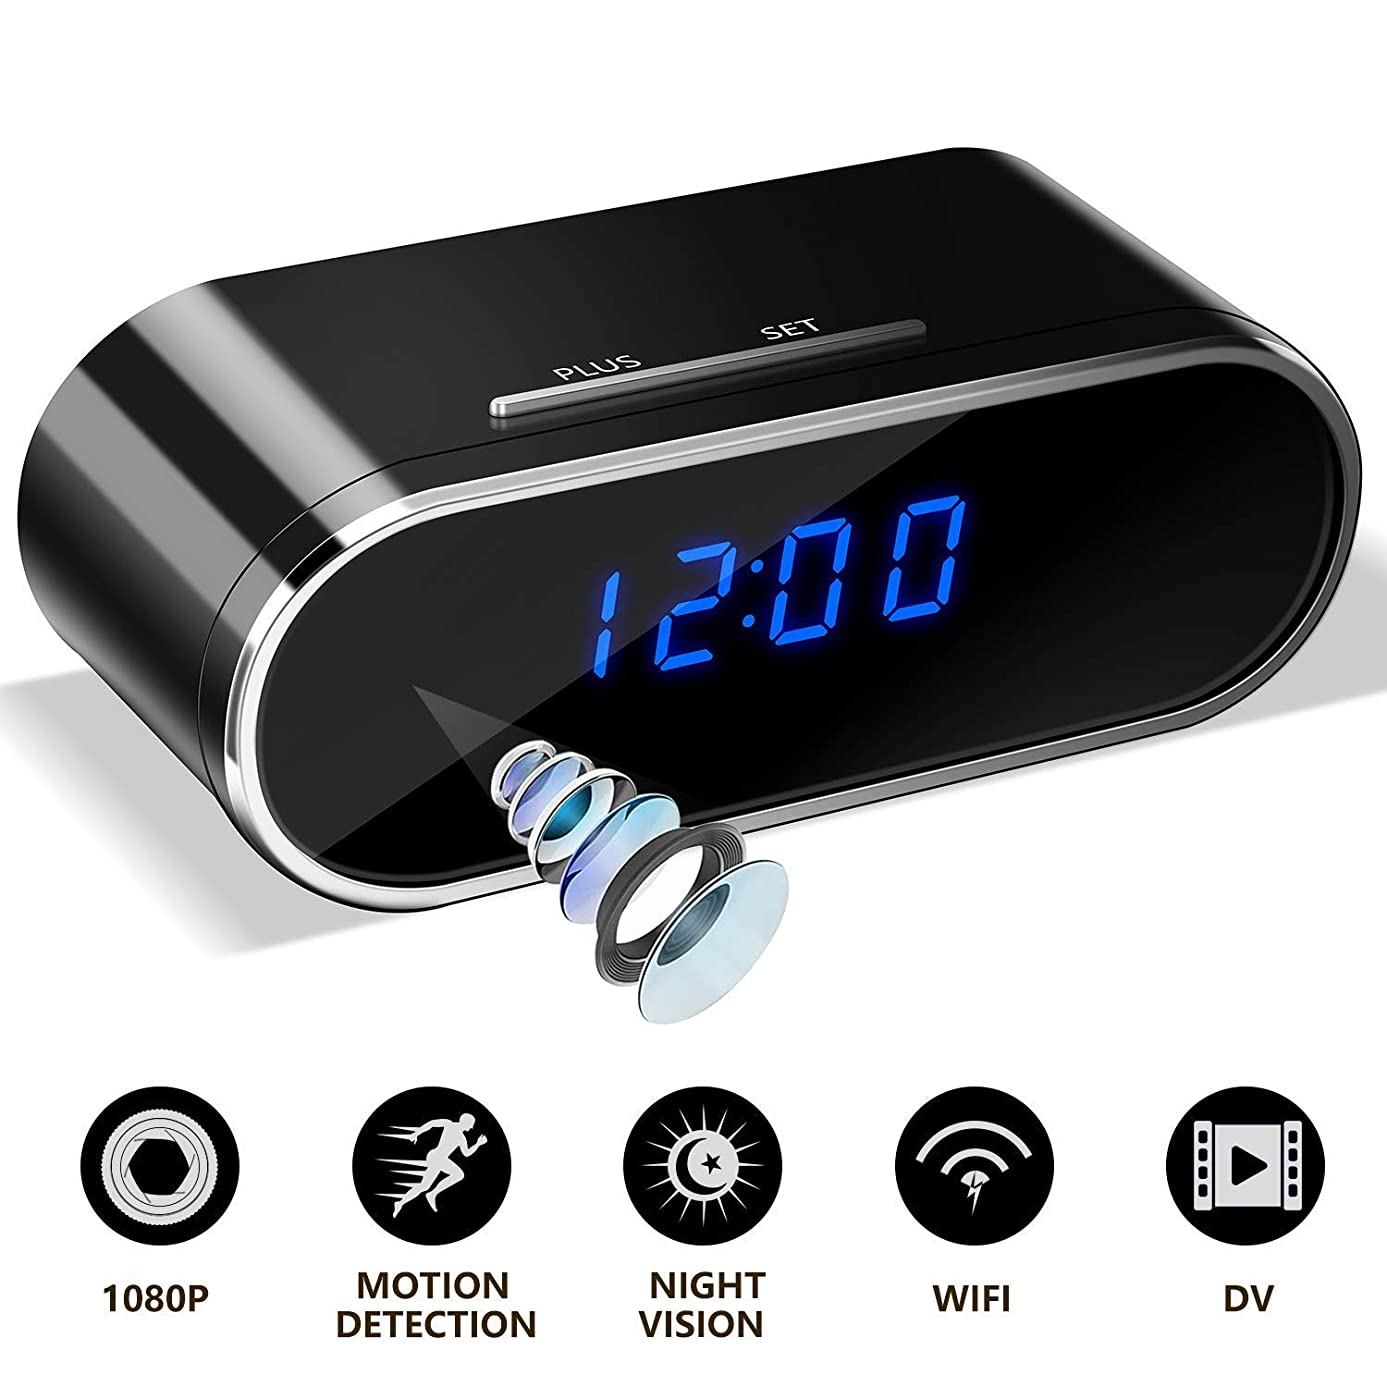 Hidden Spy Secret Nanny Wireless Camera Clock w/Sands 32GB Card Installed | Covert IR Night Vision | Motion Detection & Remote Activated via Any Smart Device